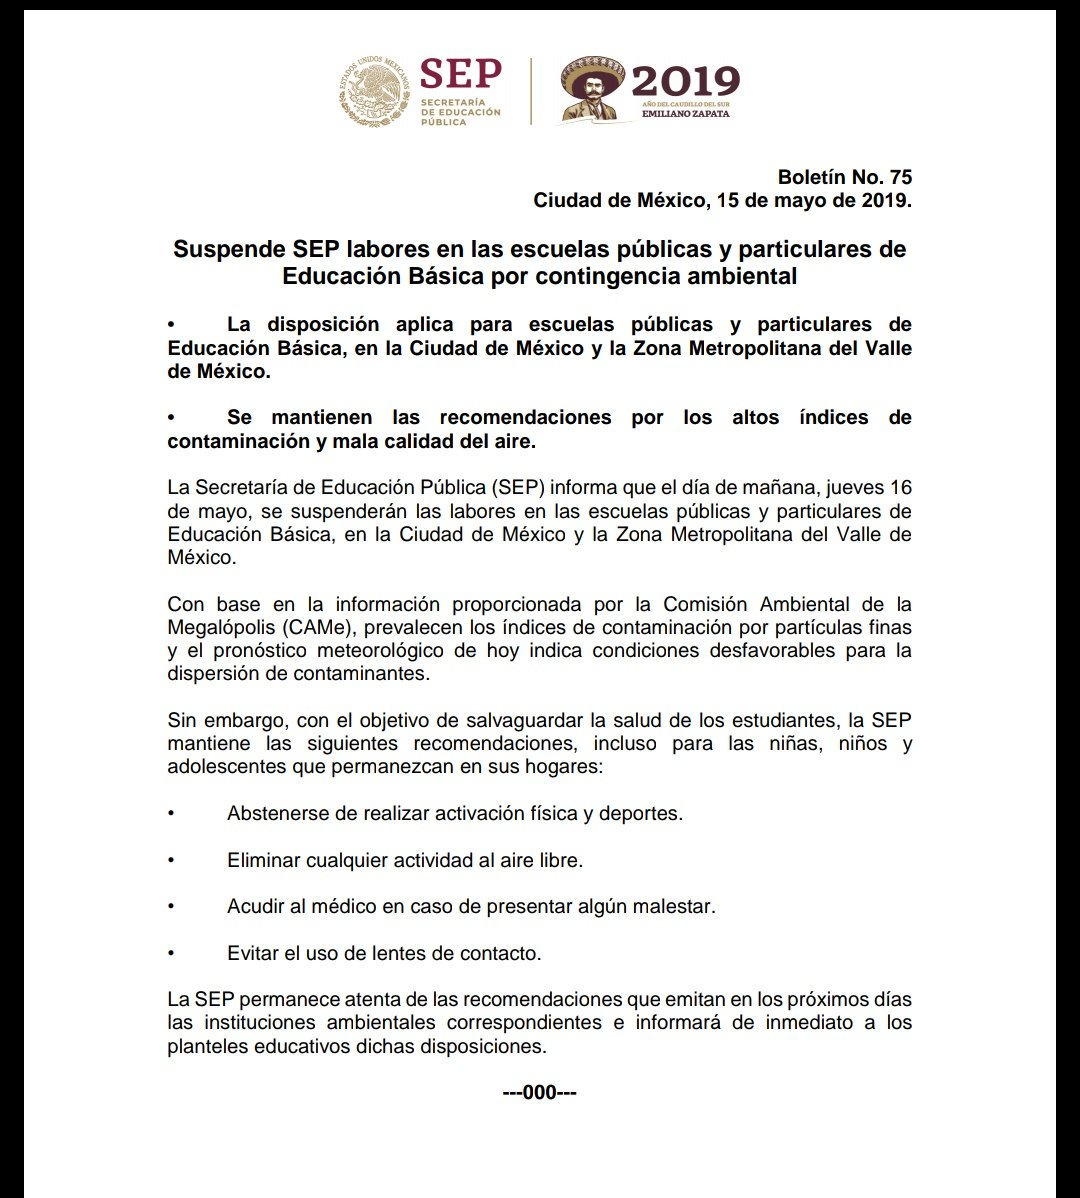 SEP suspende labores